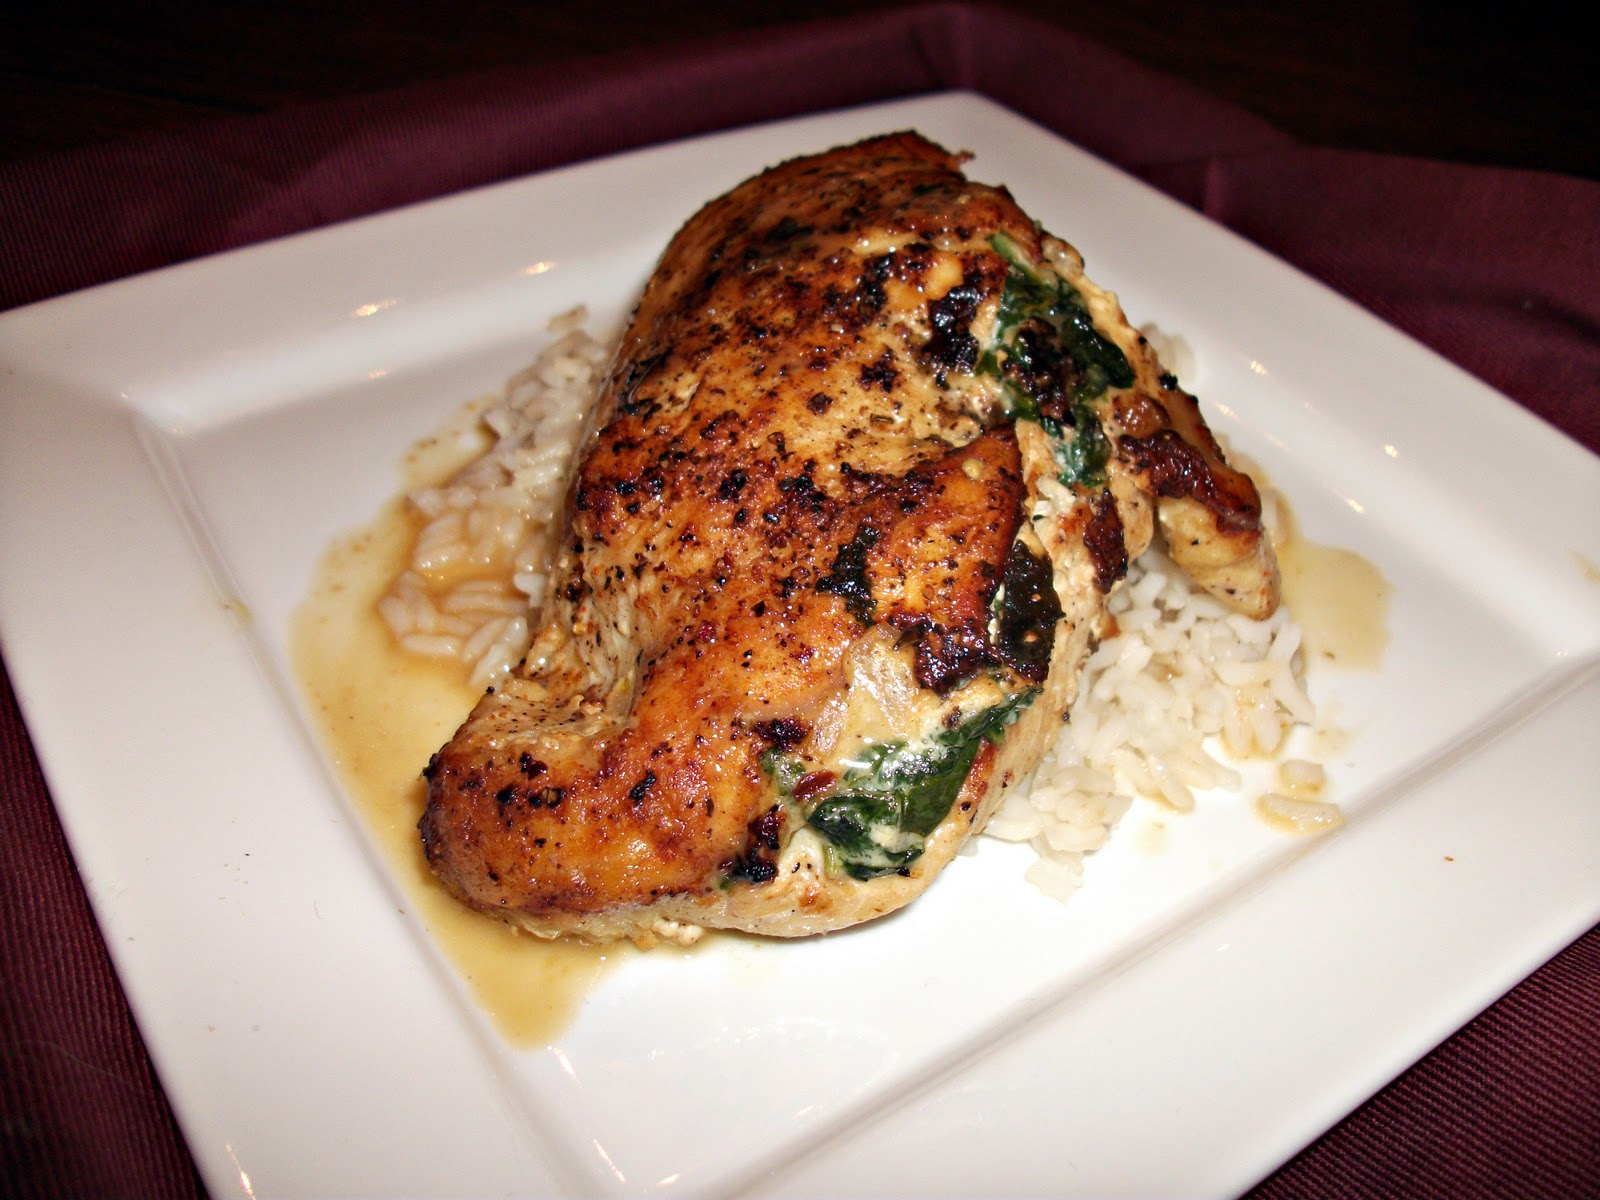 Spinach & Goat Cheese Stuffed Chicken Breasts with Pan Sauce